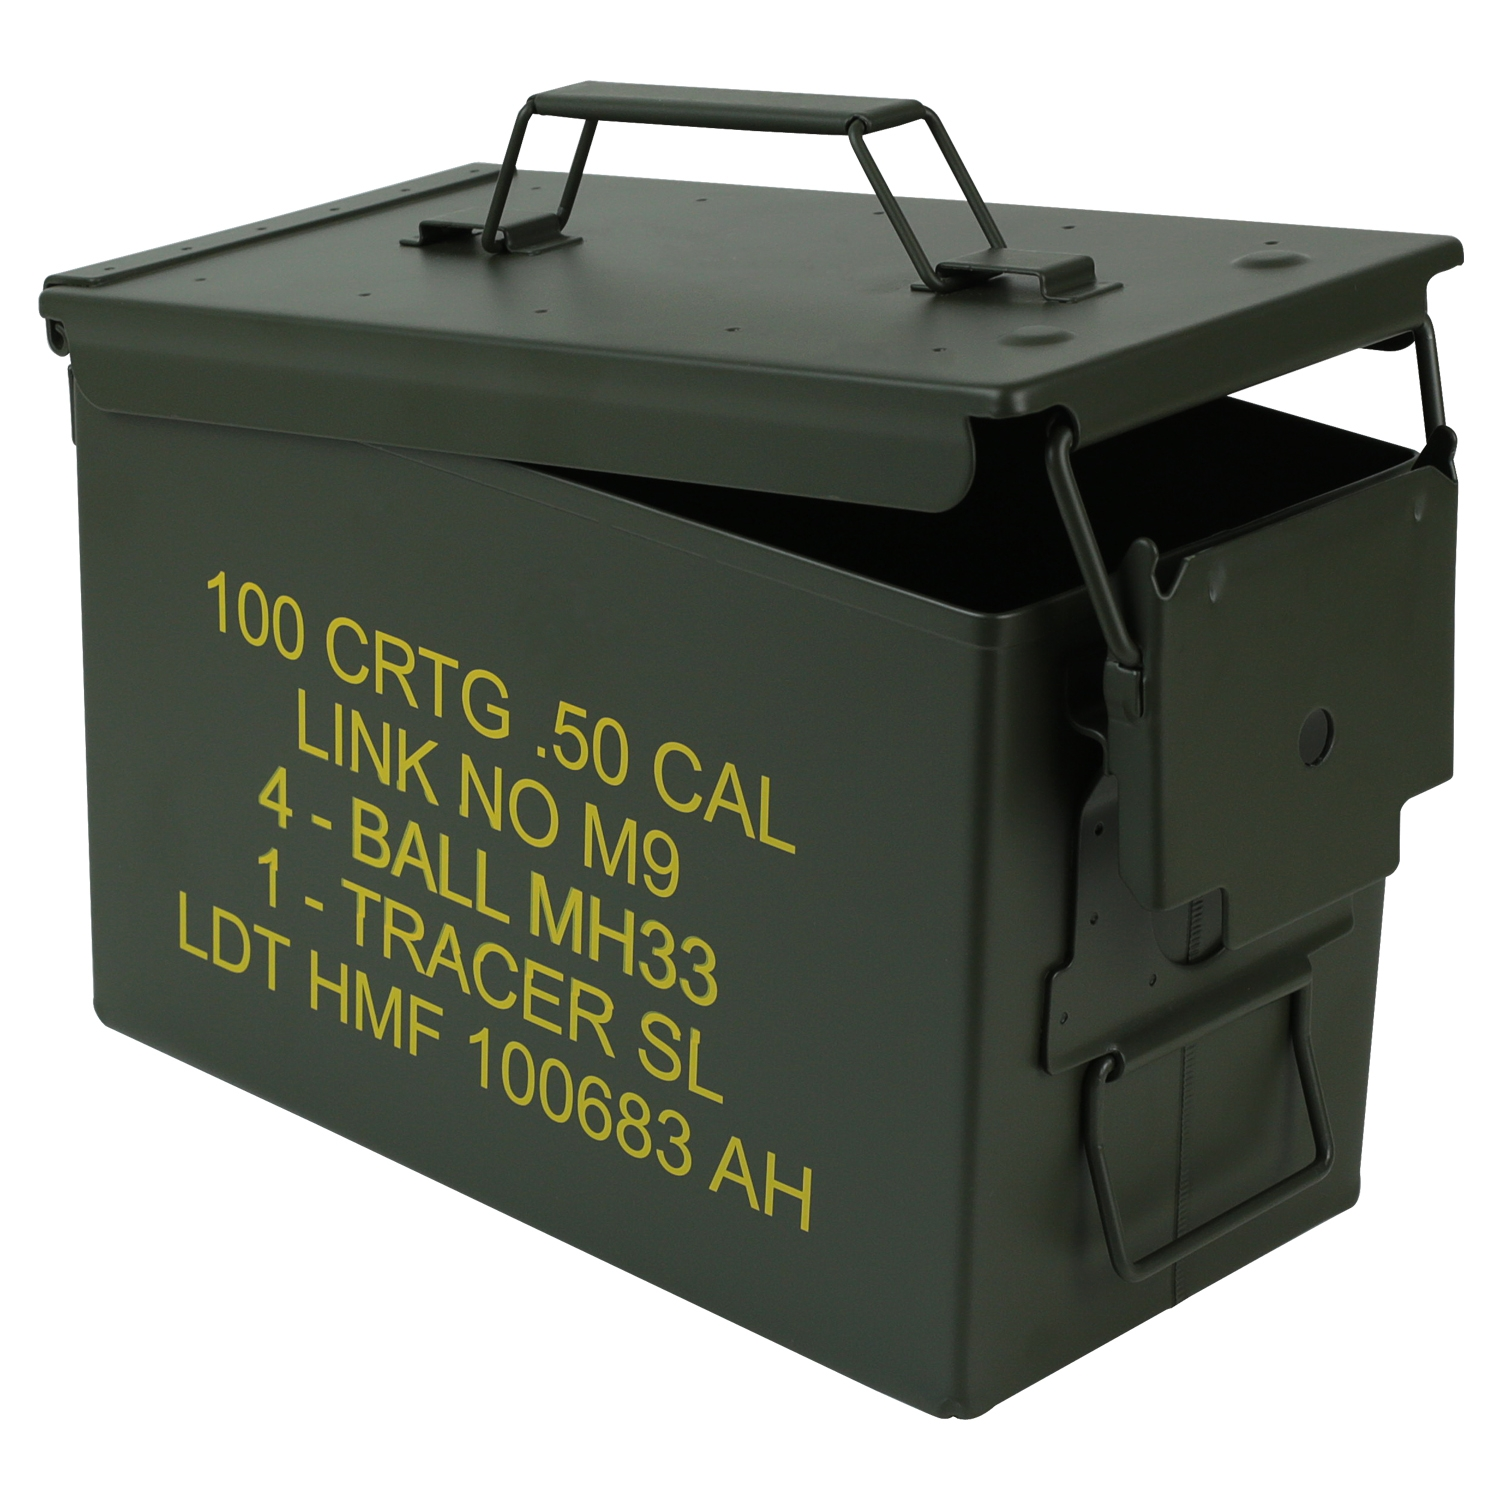 HMF-Munitionskiste-US-Ammo-Box-Metallkiste-Metallbox-Transportbox-Werkzeugkoffer Indexbild 9